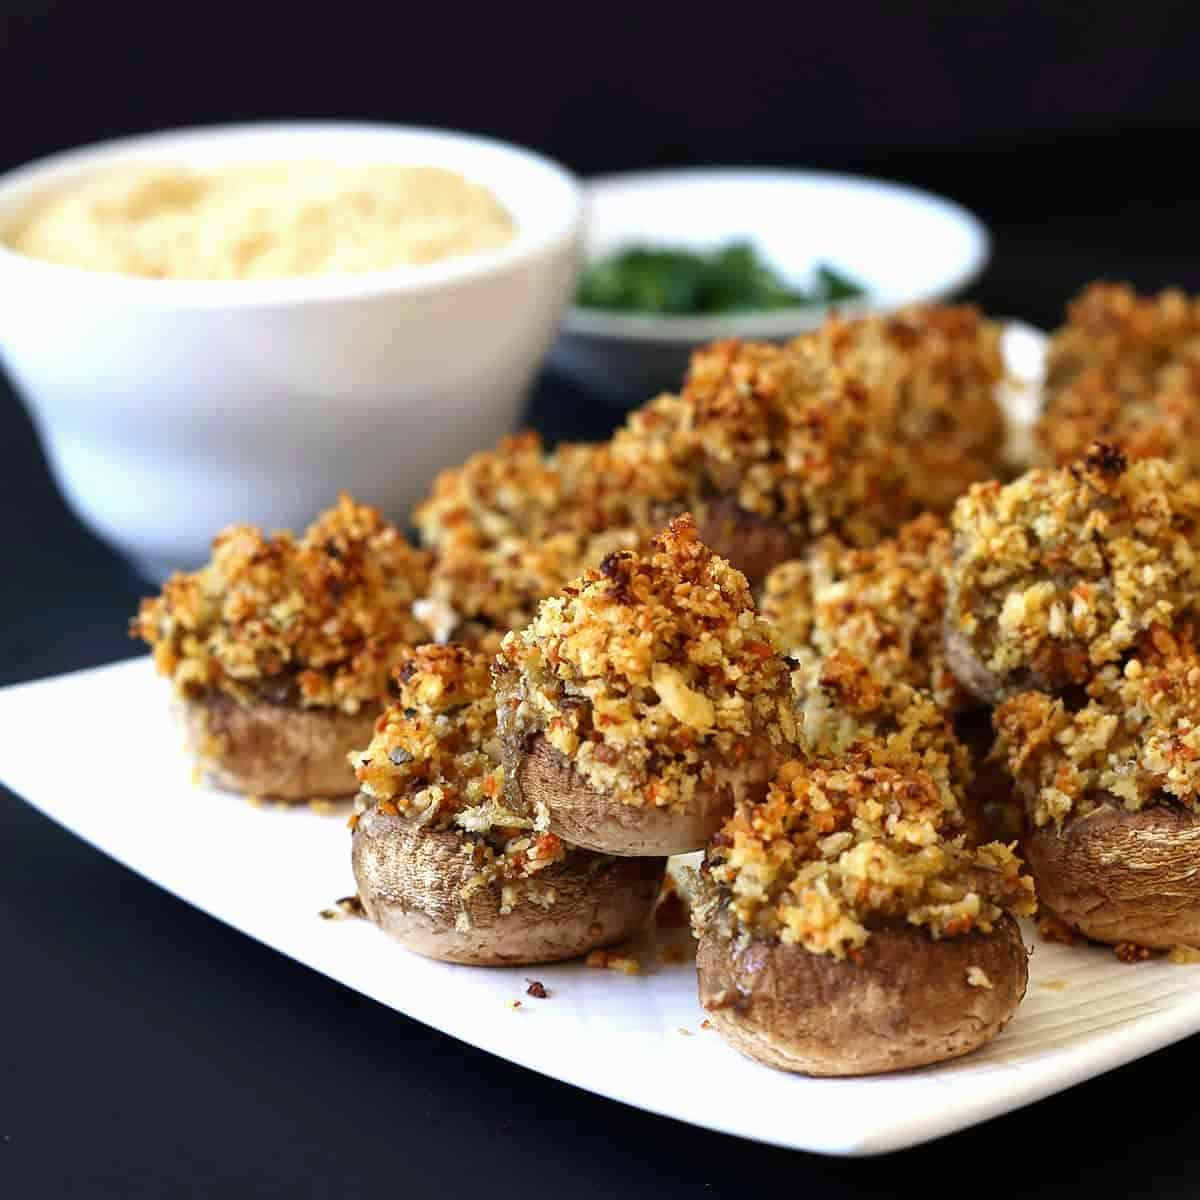 Stuffed Mushrooms plated with ingredients behind.